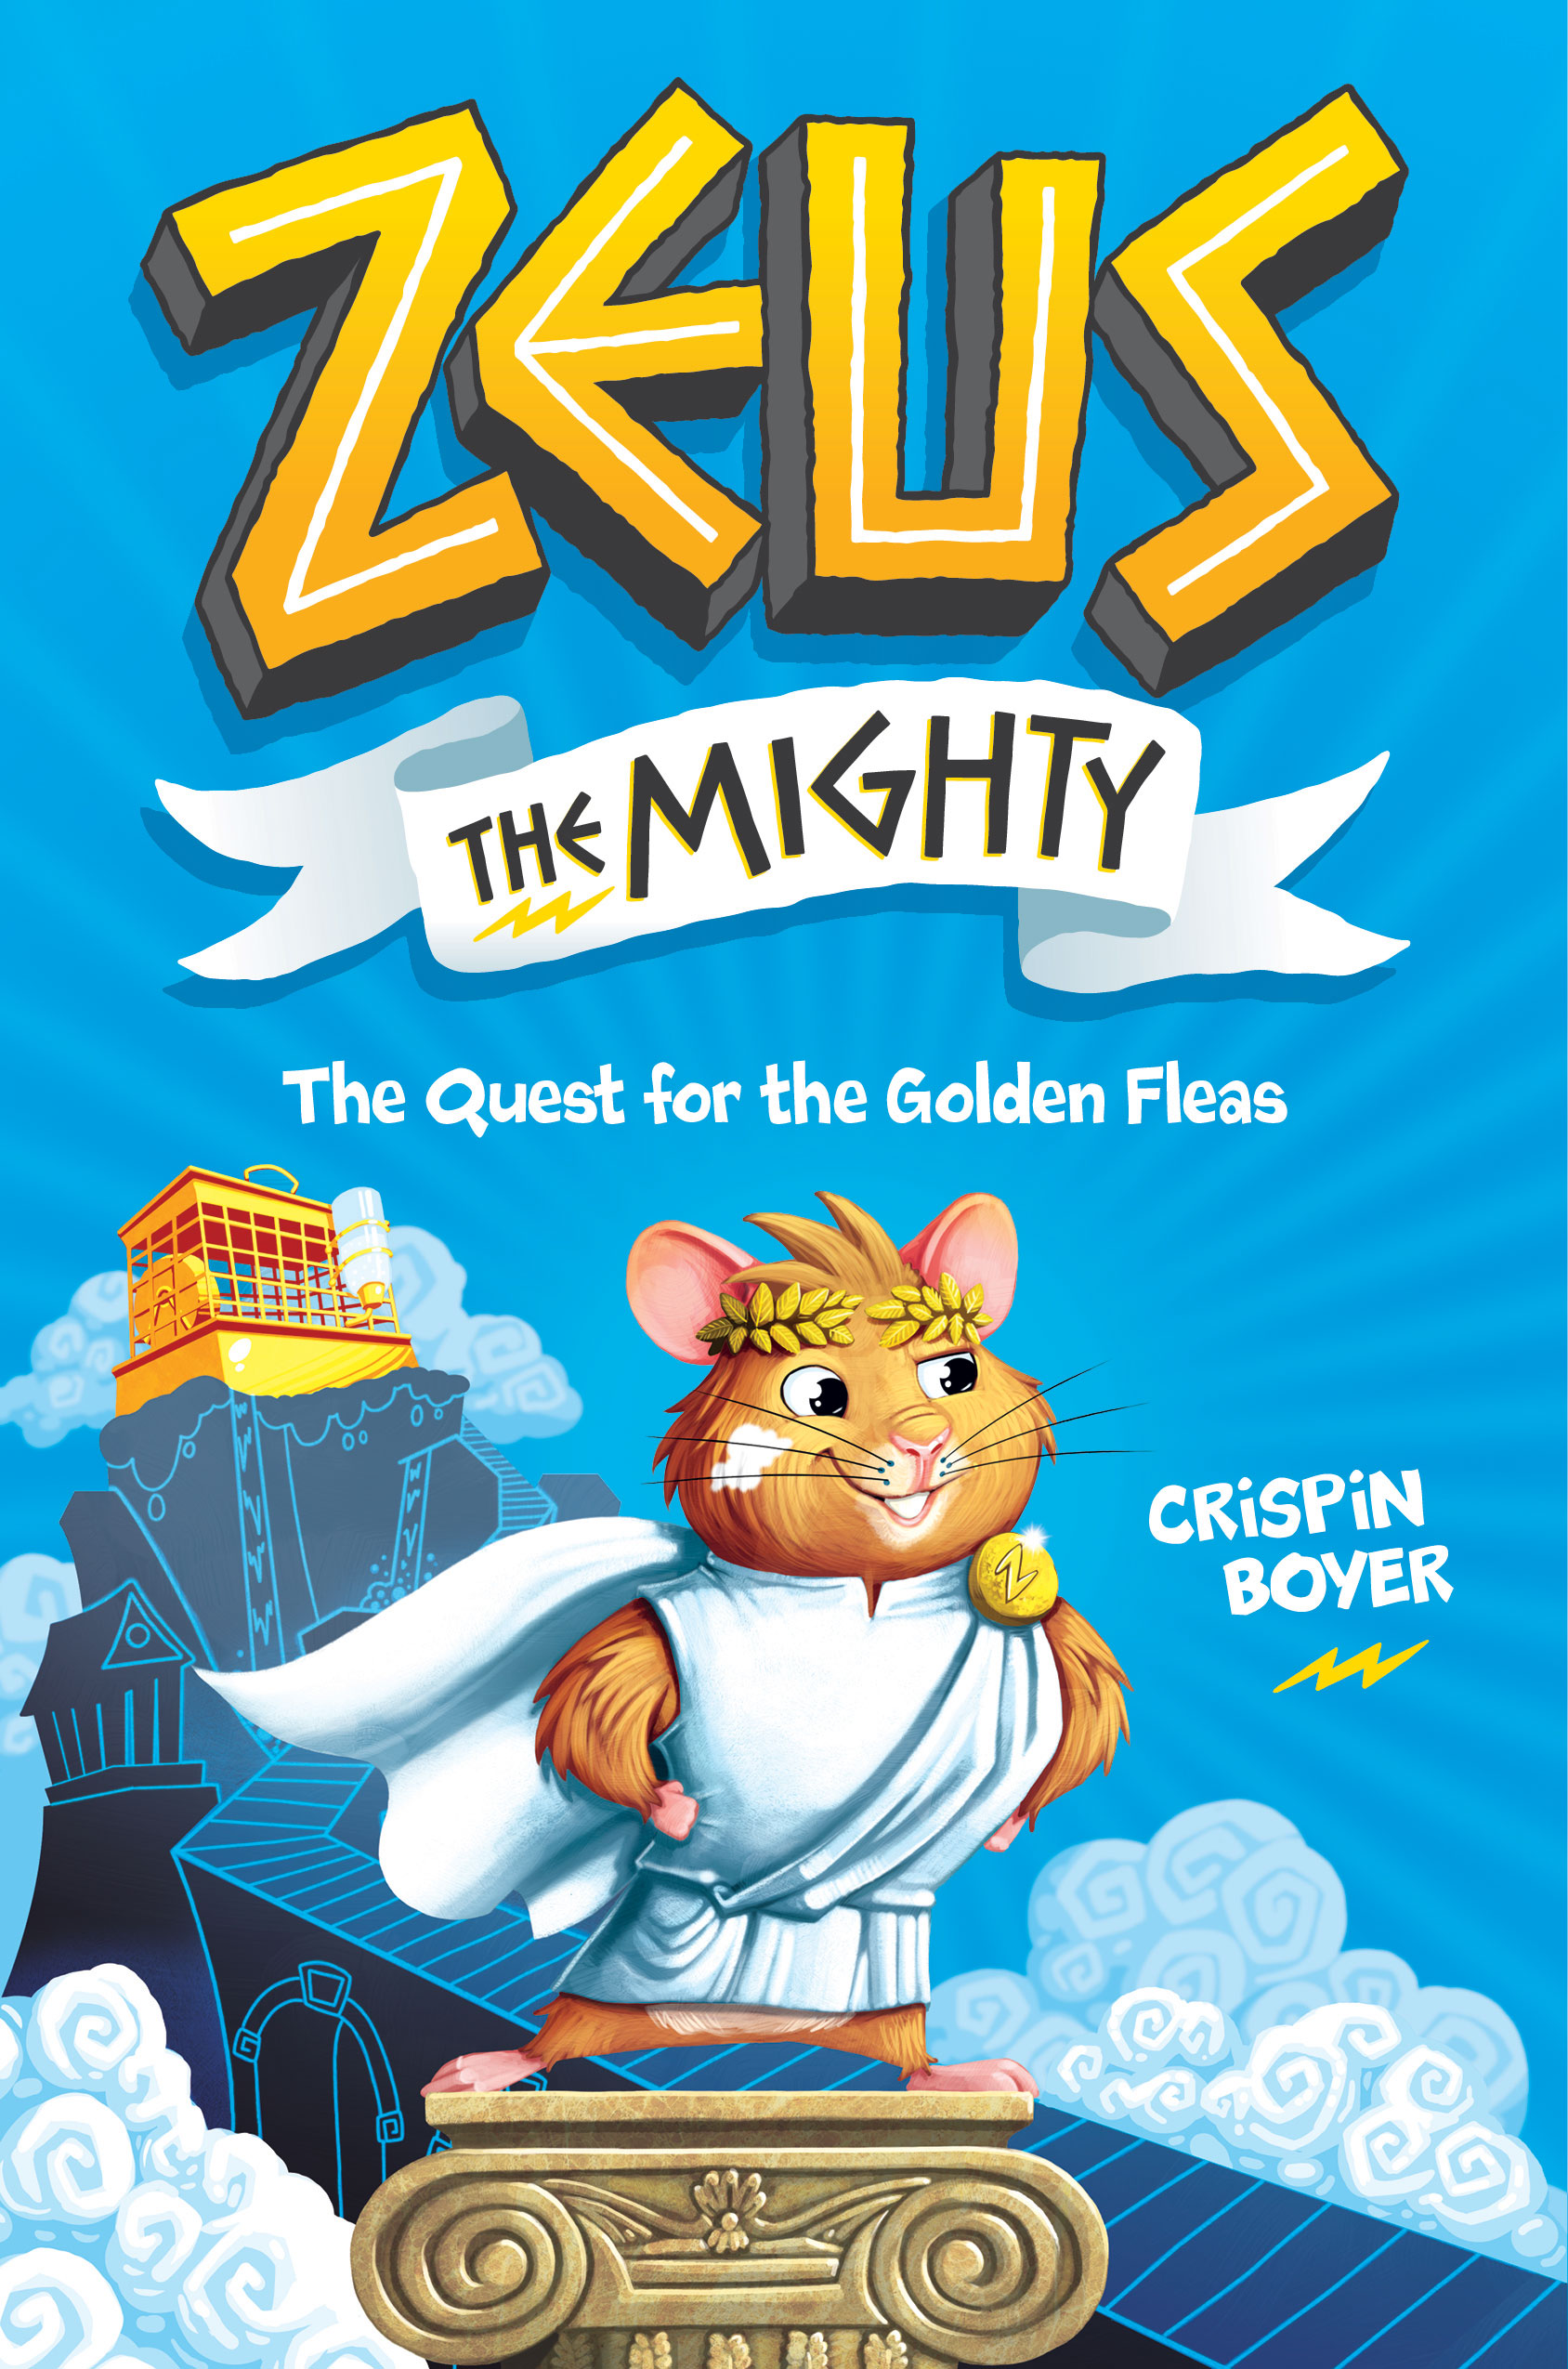 National Geographic Kids Debuts New Fiction Series, 'Zeus the Mighty: The Quest for the Golden Fleas'